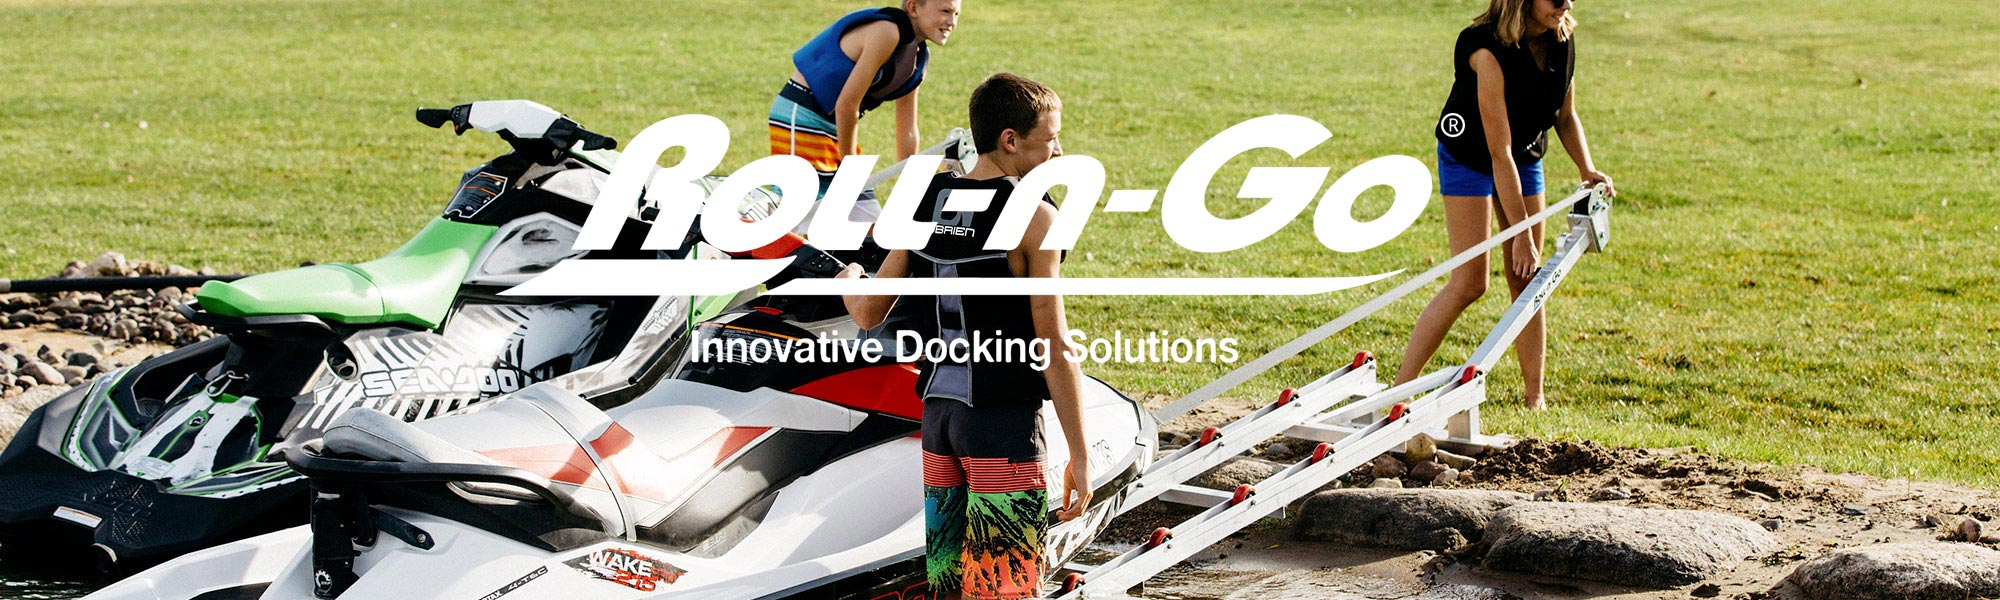 Roll-n-Go Shore Docking Solutions